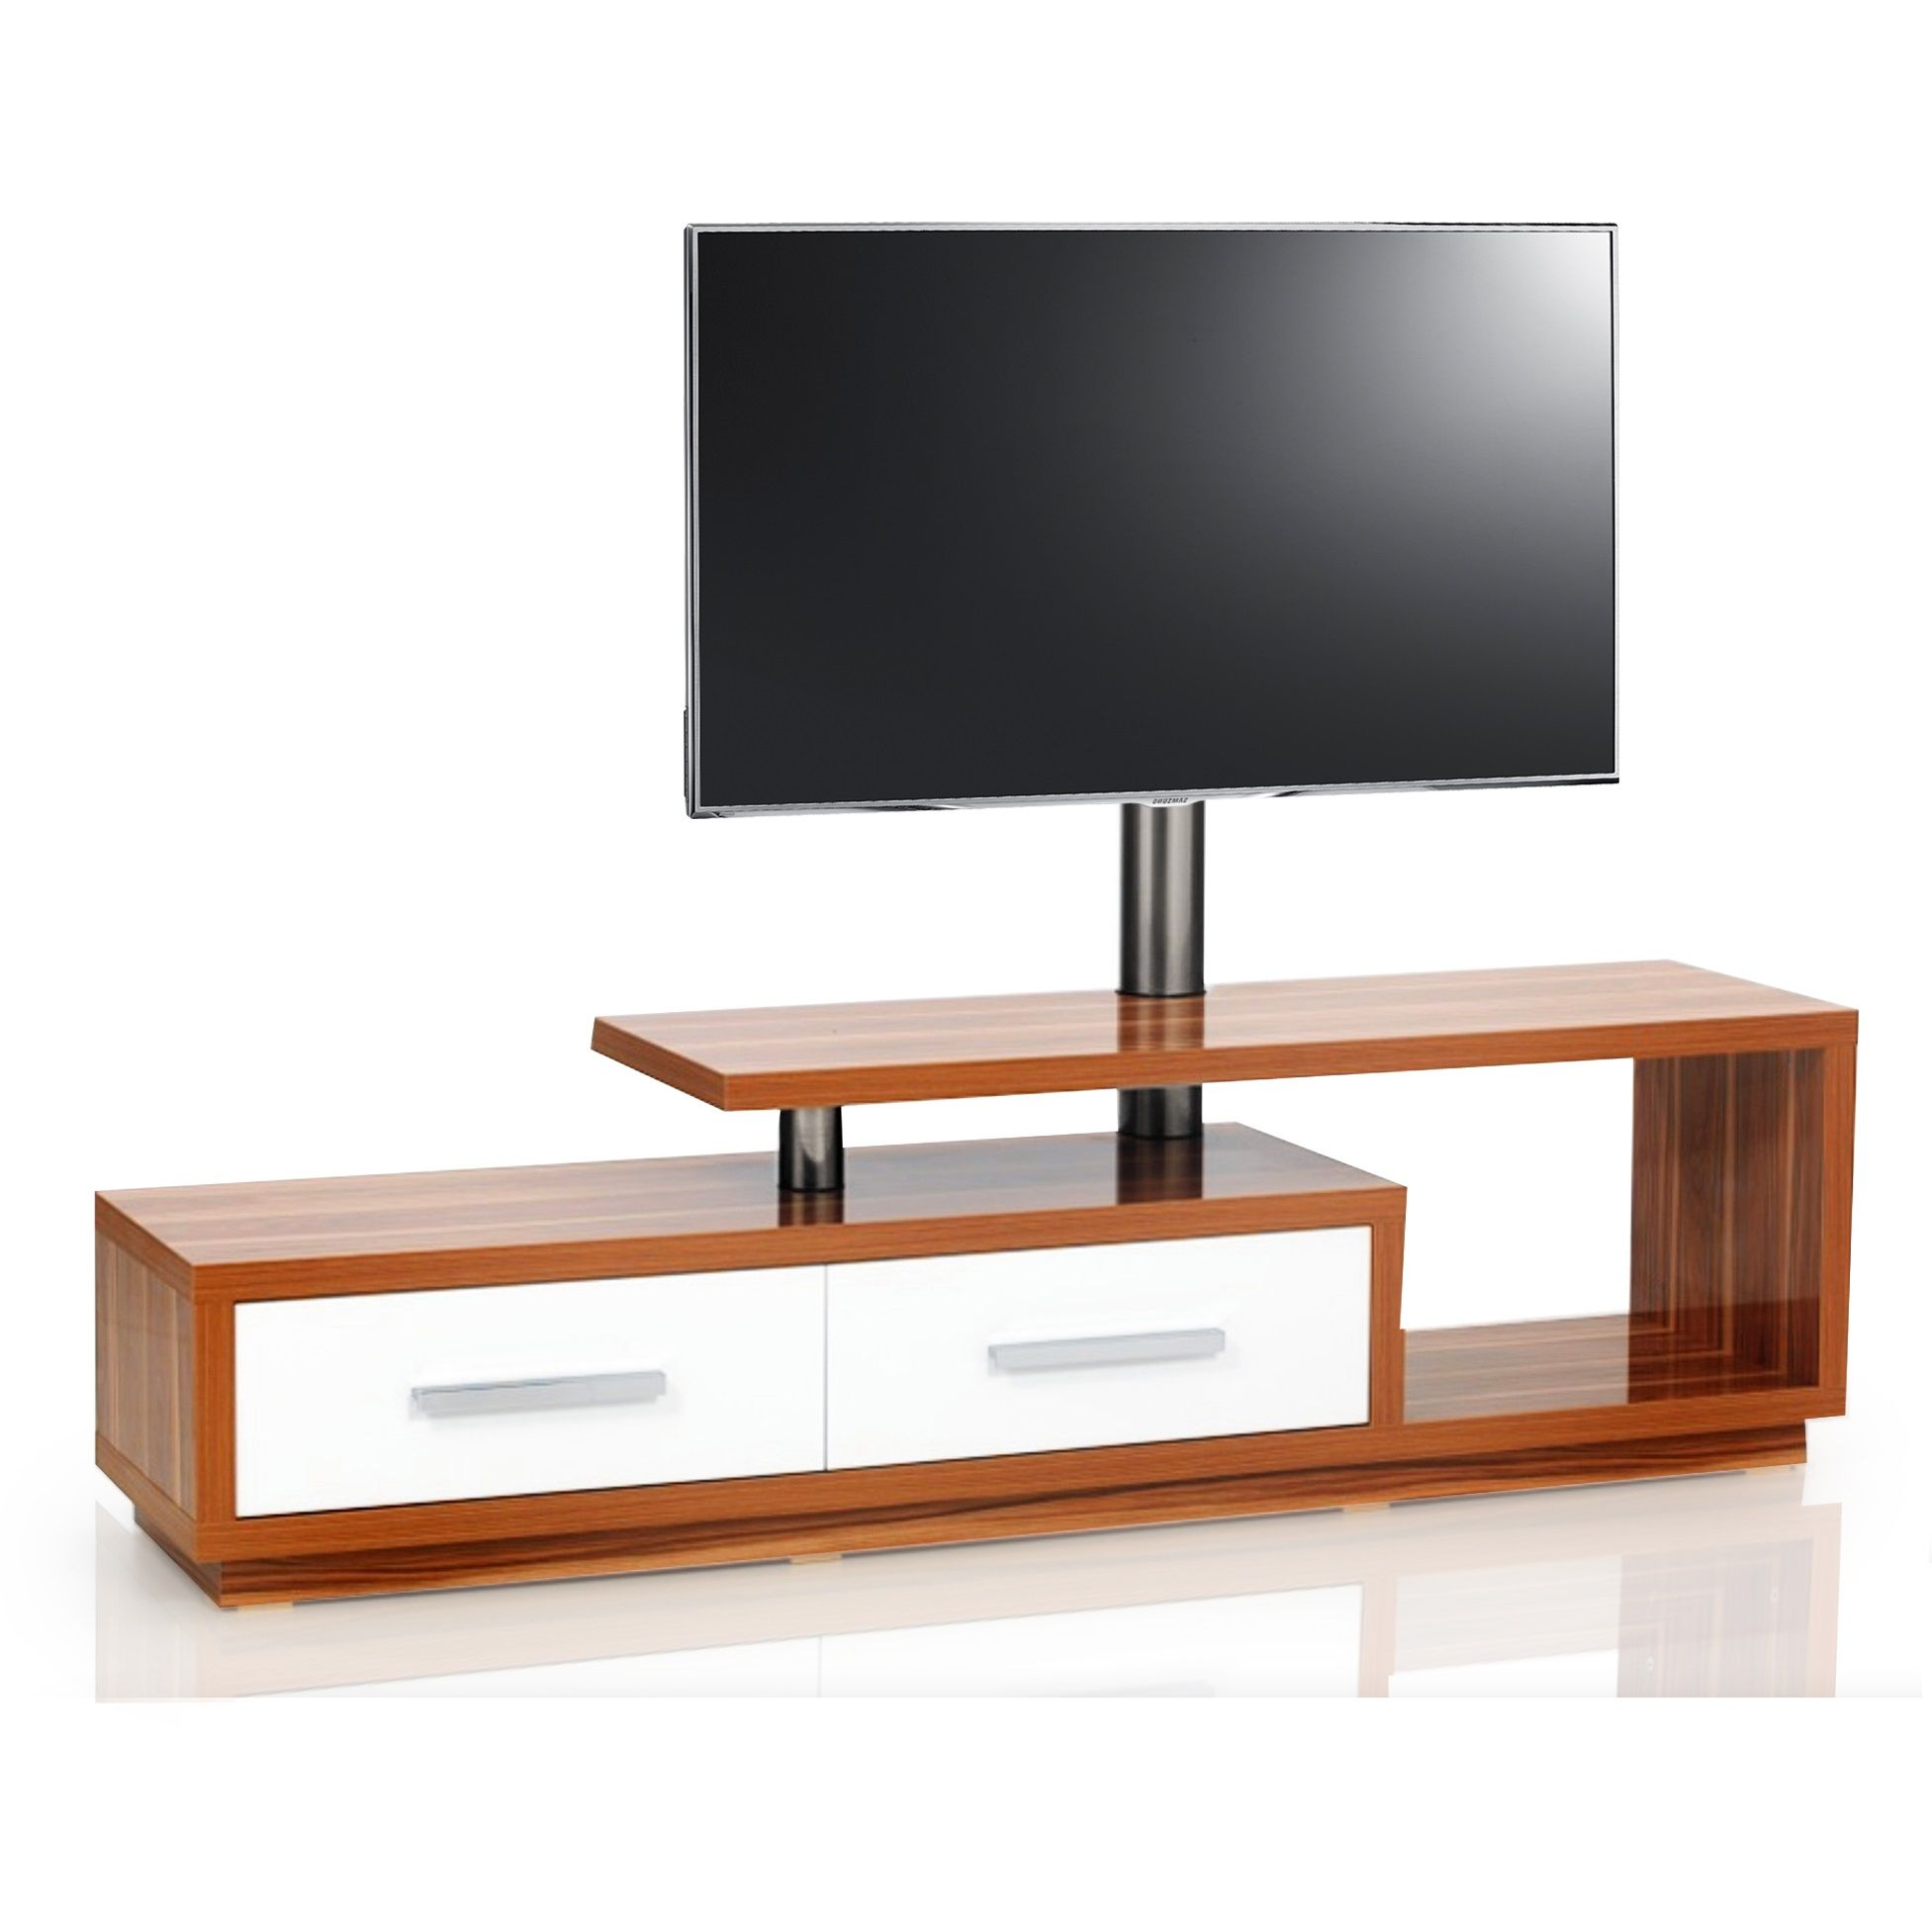 Stunning Tables De Television Contemporary Joshkrajcik Us  # Table Basse En Verre Tele